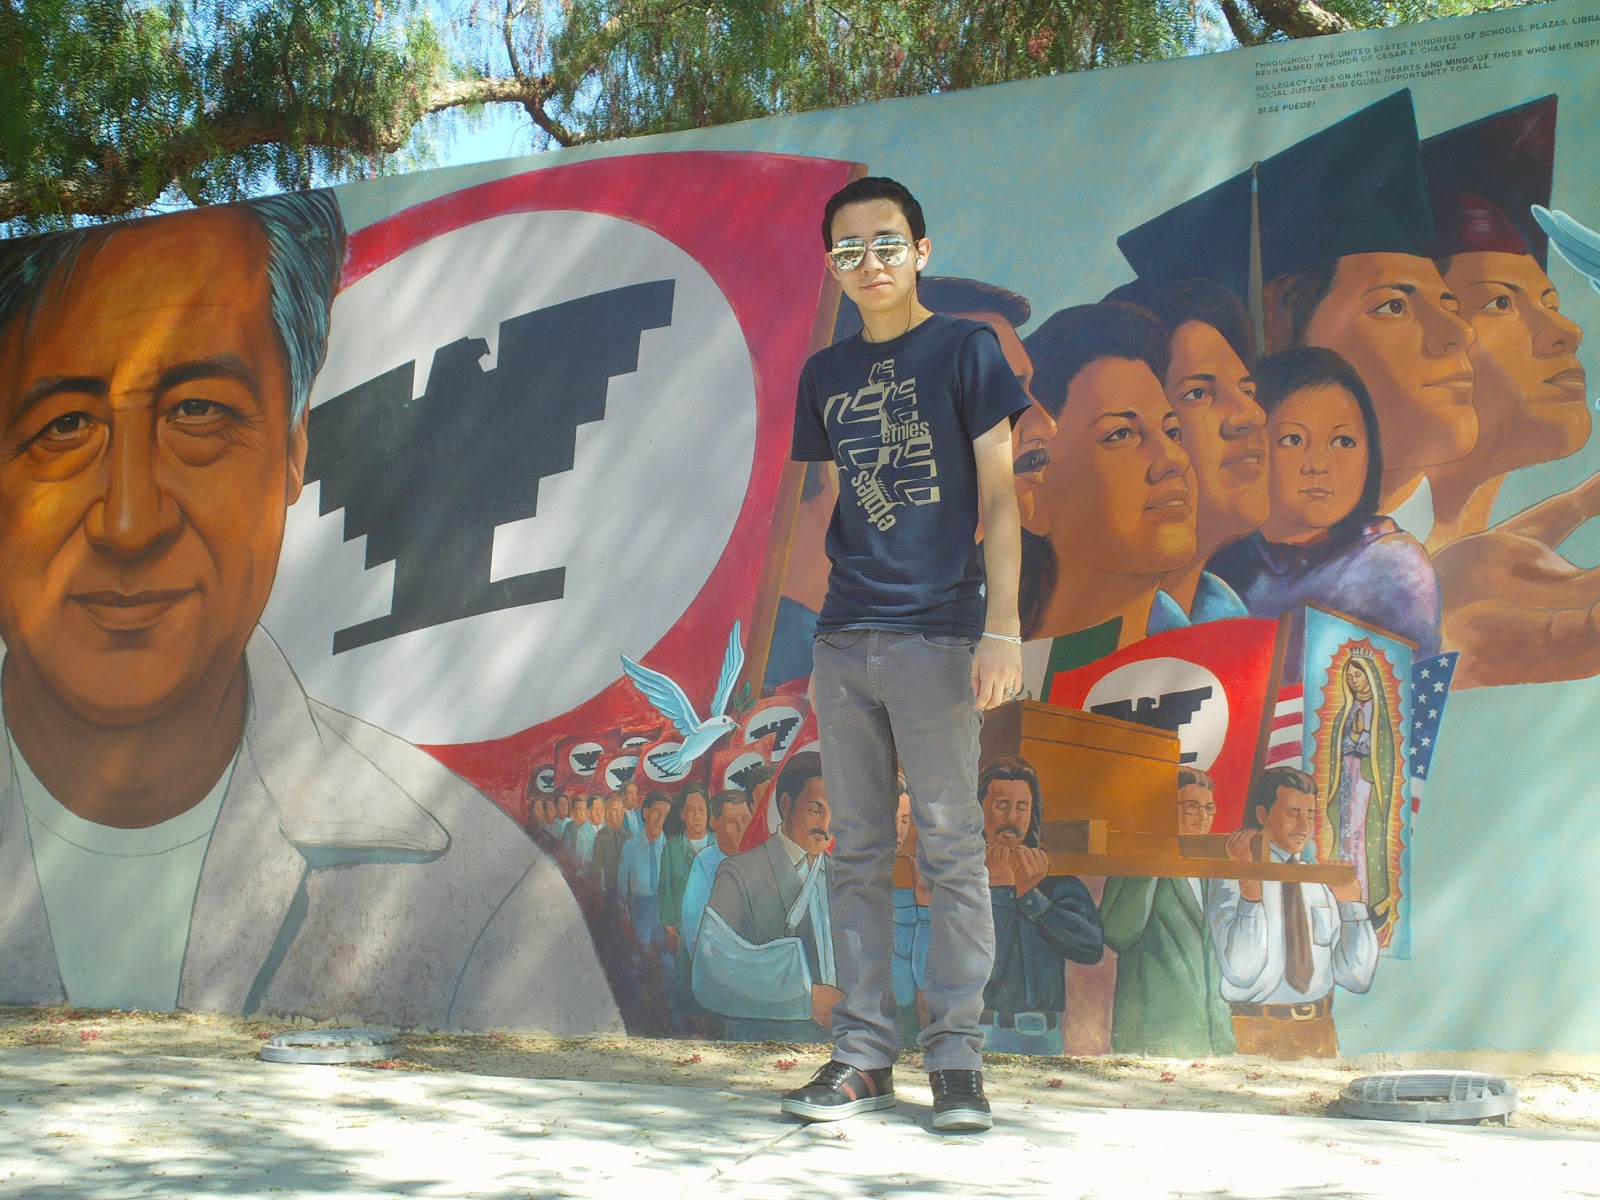 1000 images about ufw on pinterest for Cesar chavez mural